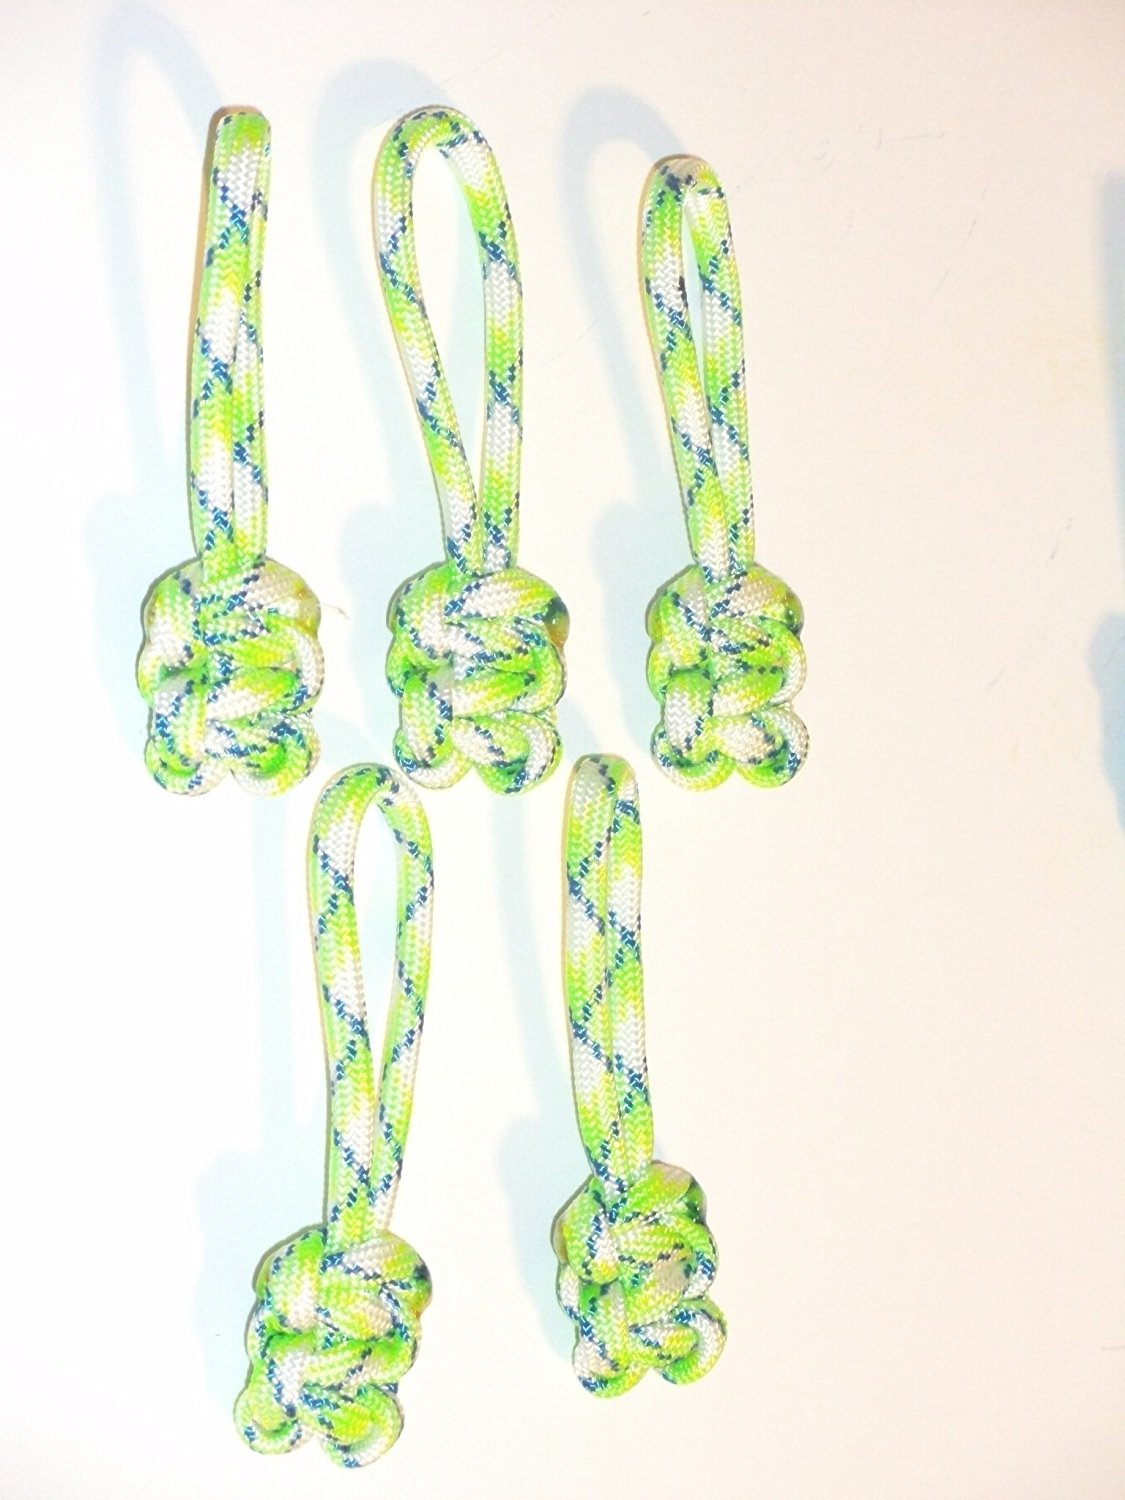 RedVex Paracord Zipper Pulls / Lanyards - Lot of 5 - ~2.5 - Green Flux